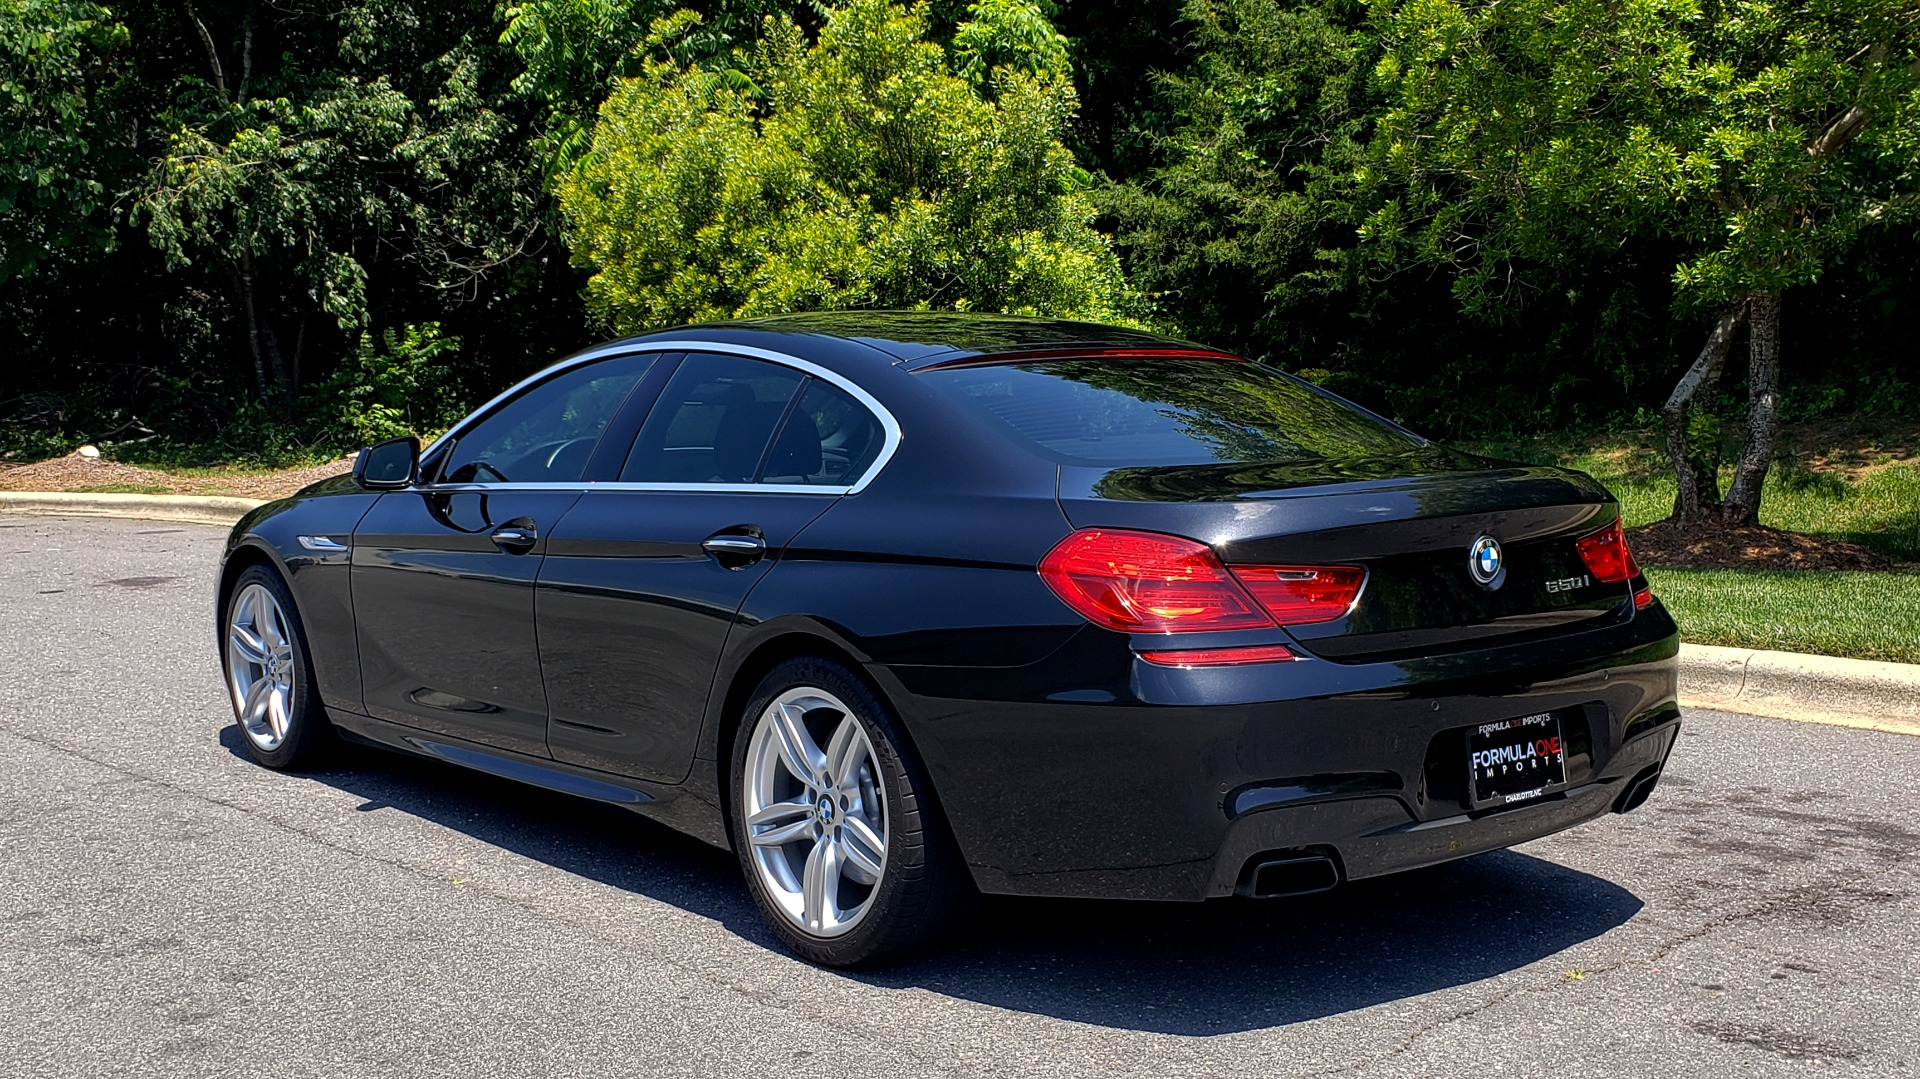 Used 2013 BMW 6 SERIES 650I GRANCOUPE / M-SPORT / LUXURY / NAV / SUNROOF / HTD STS for sale Sold at Formula Imports in Charlotte NC 28227 4